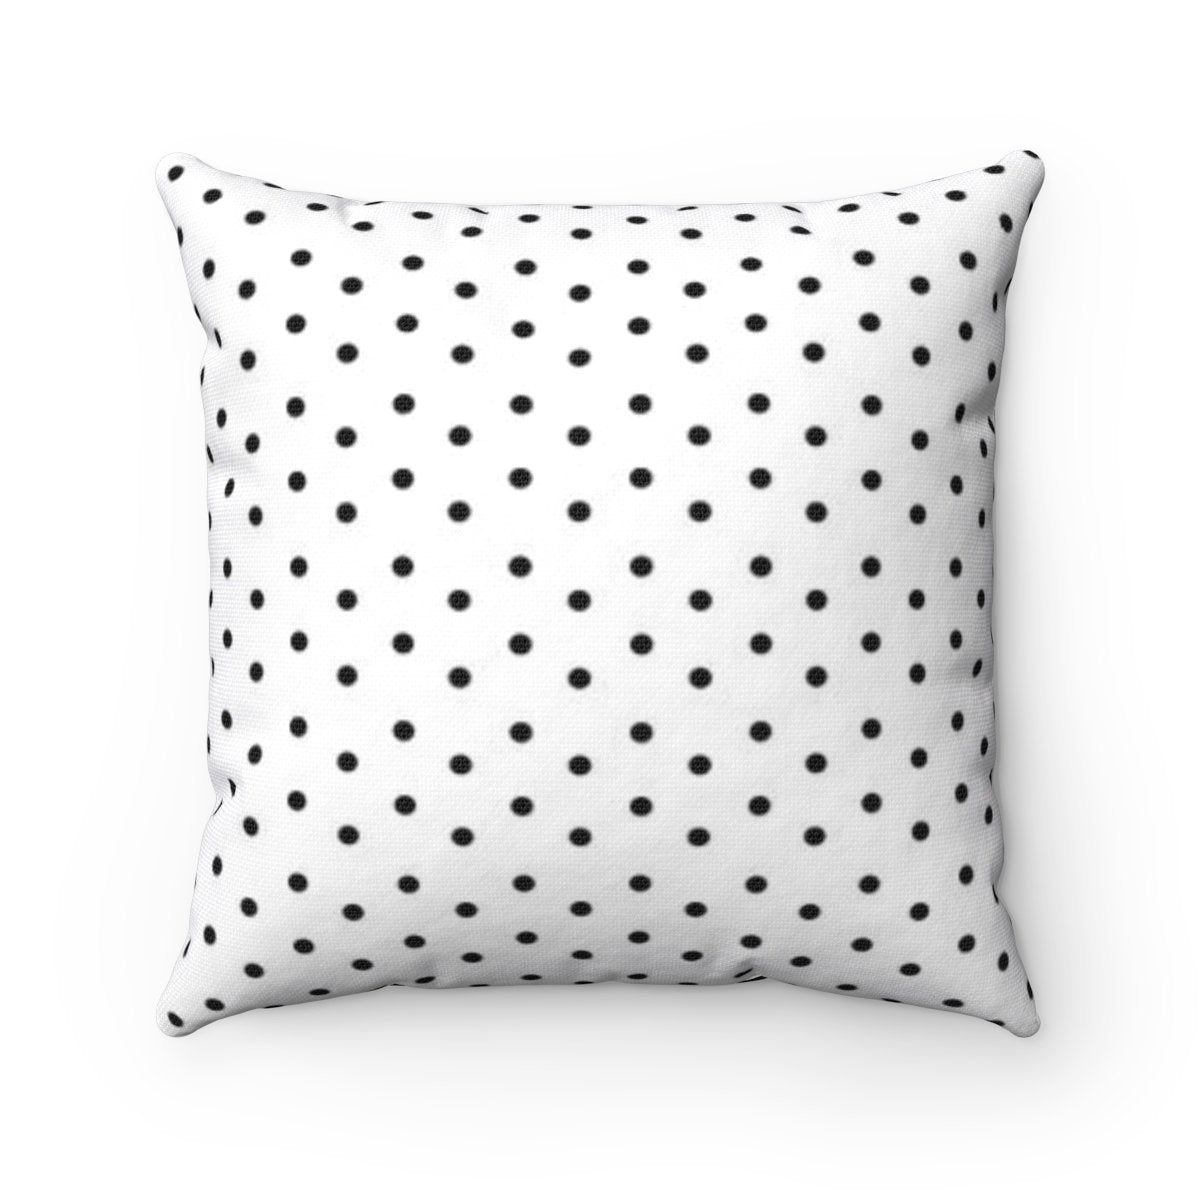 2 in 1 Black and White Polka dots decorative cushion cover-Home Decor - Decorative Accents - Pillows & Throws - Decorative Pillows-Maison d'Elite-Très Elite